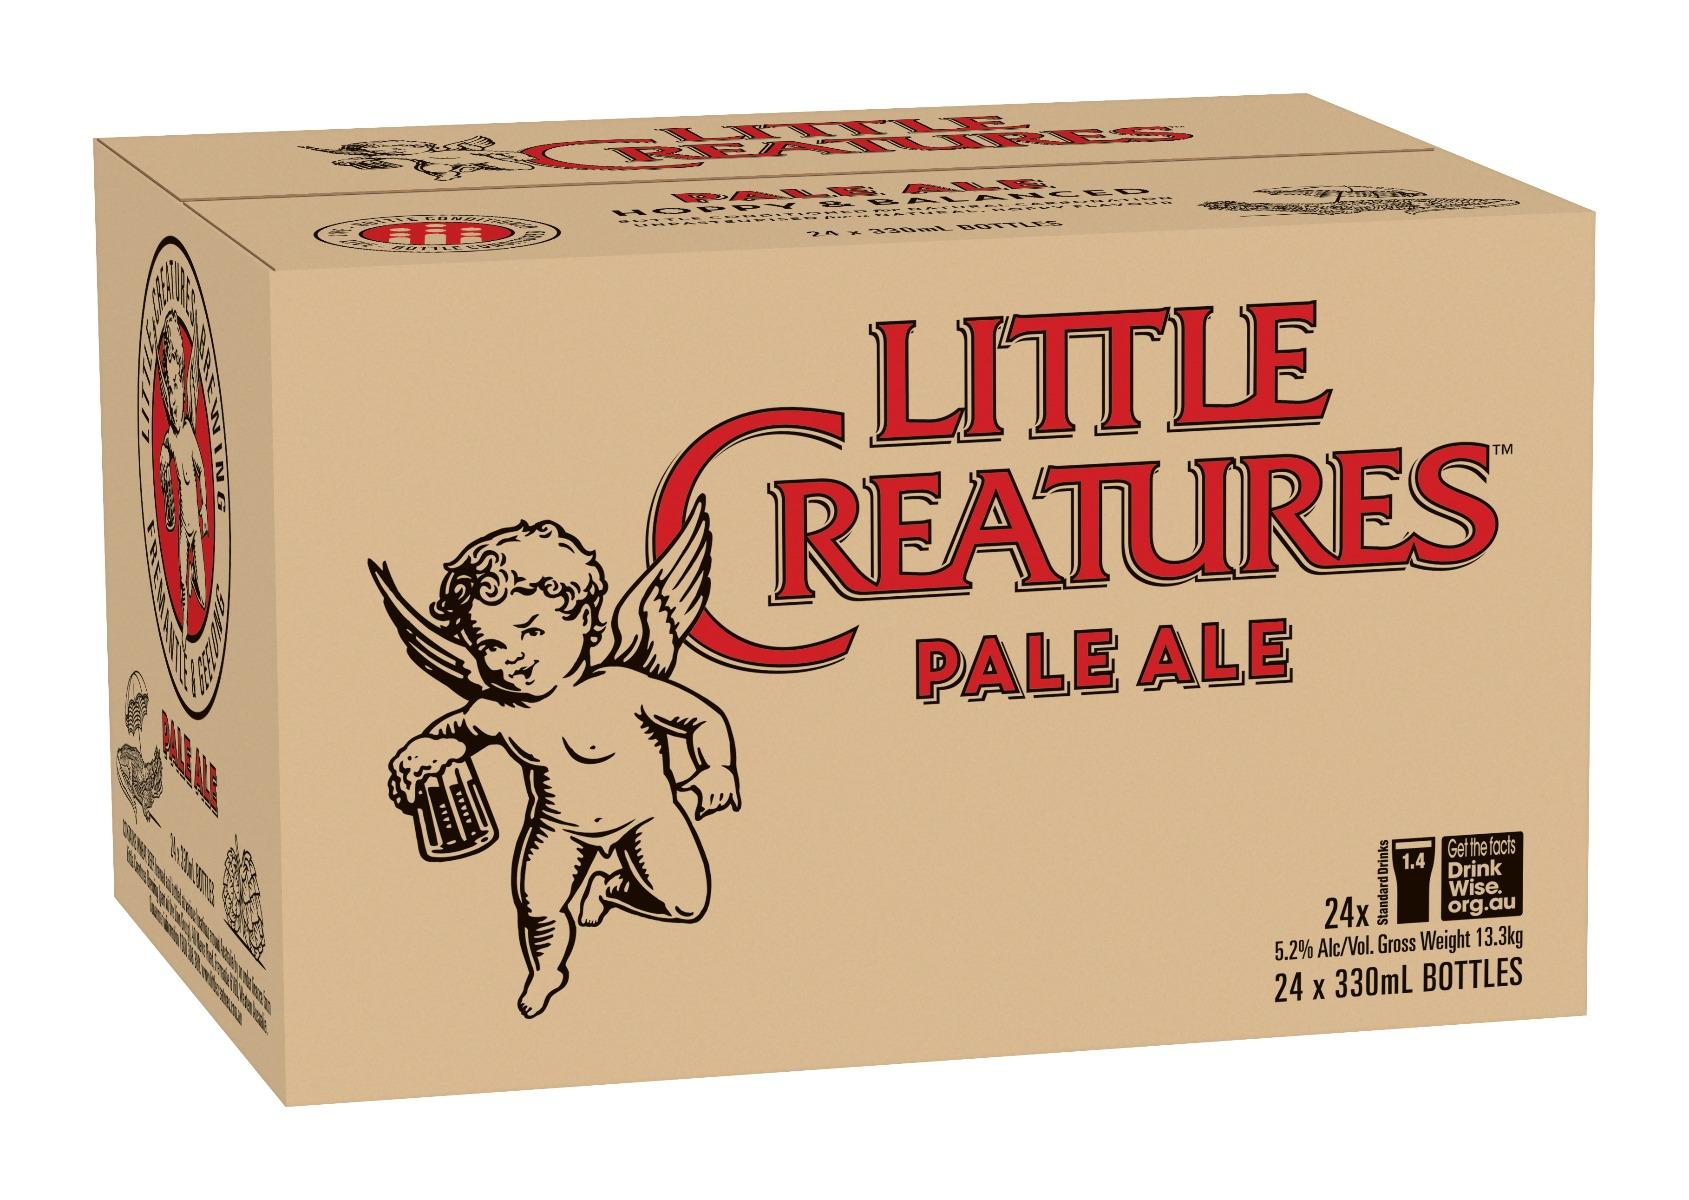 Little Creatures Pale Ale (24 X 330ml) By Little Creatures.